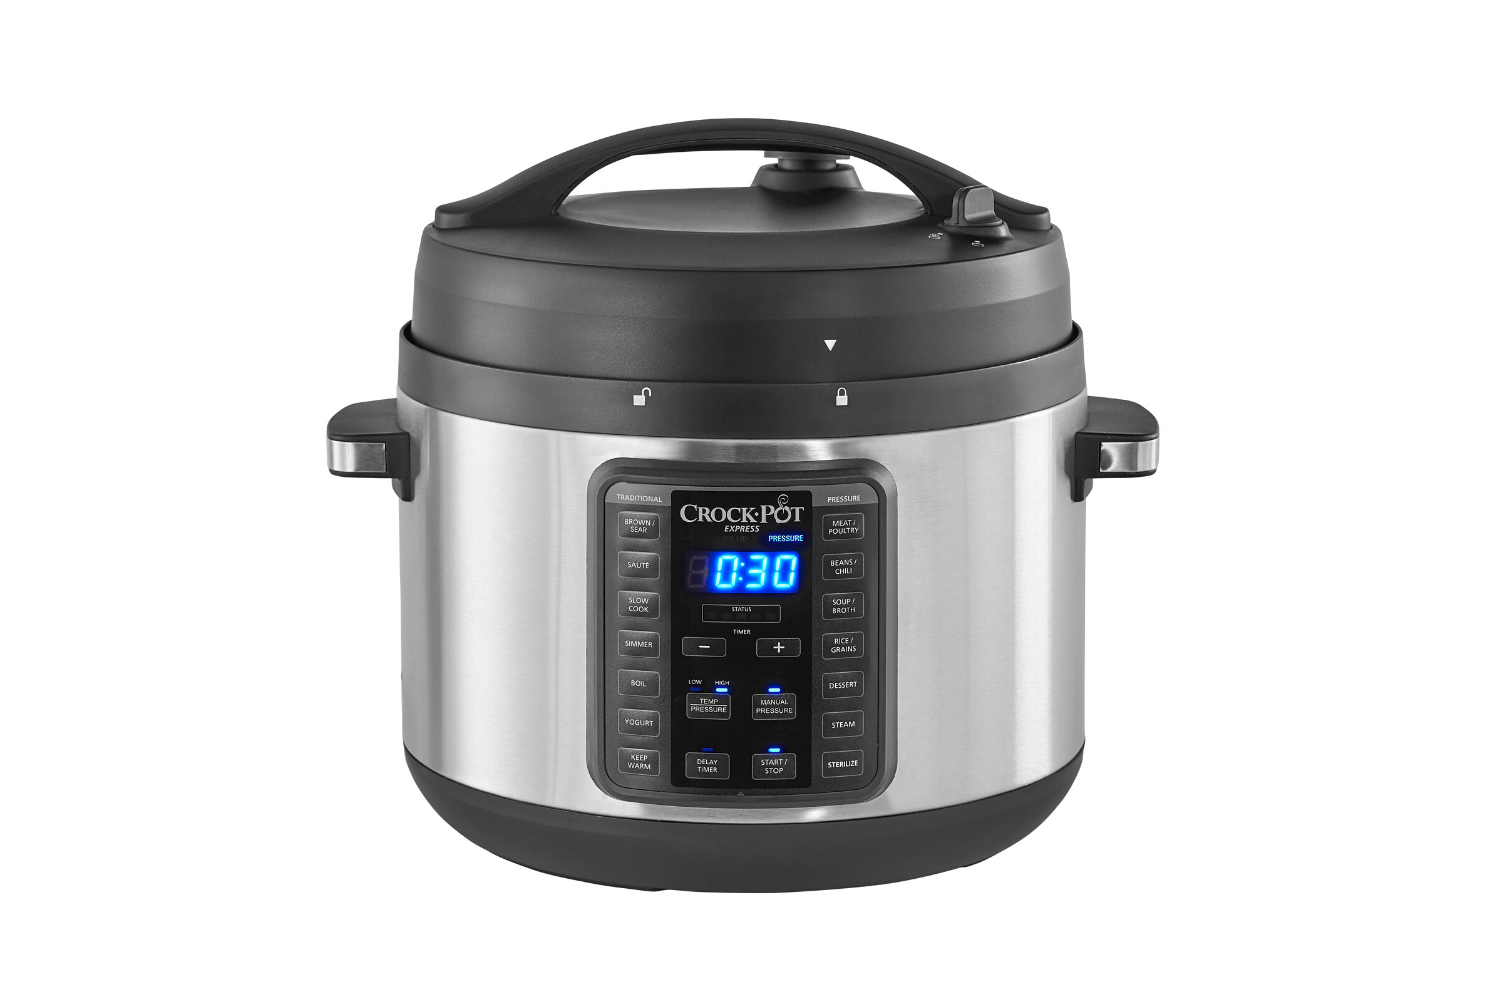 10 Quart Crock Pot